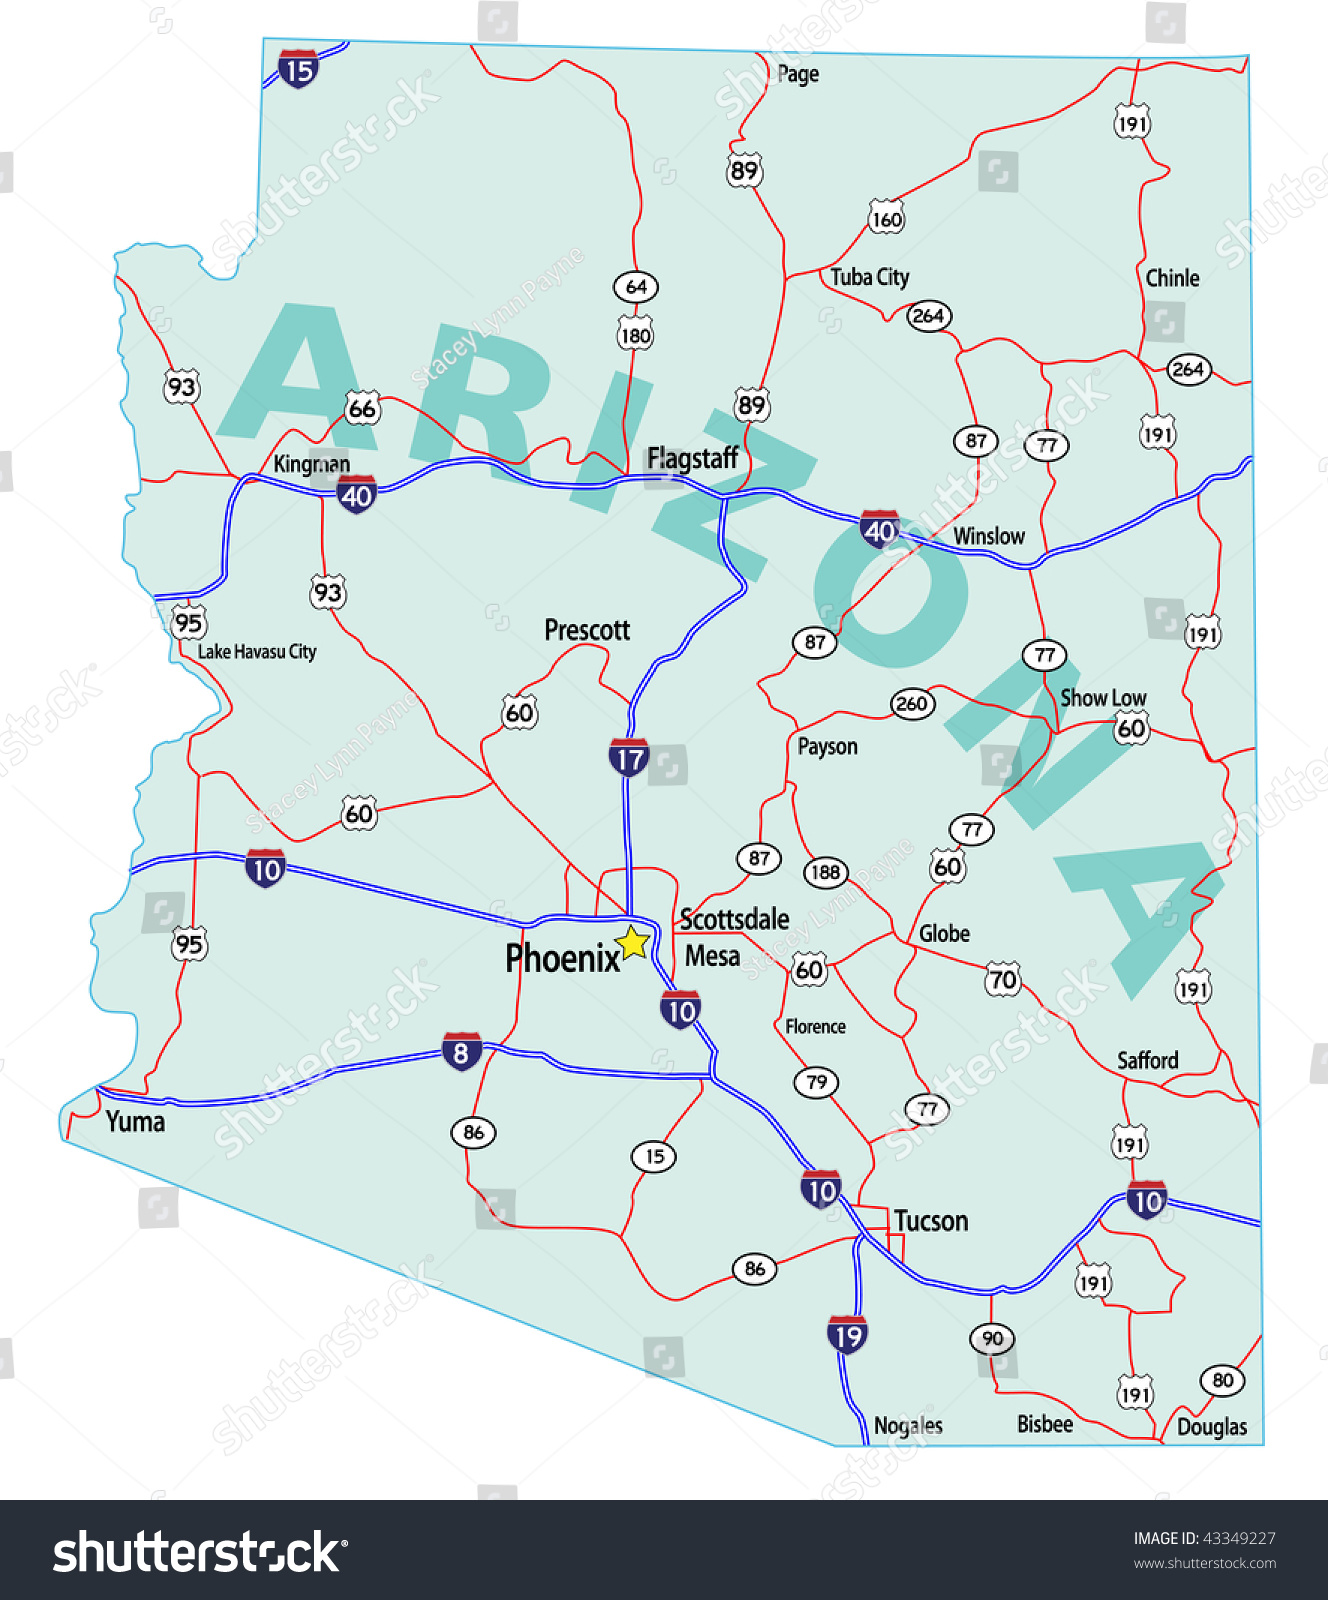 map with interstates